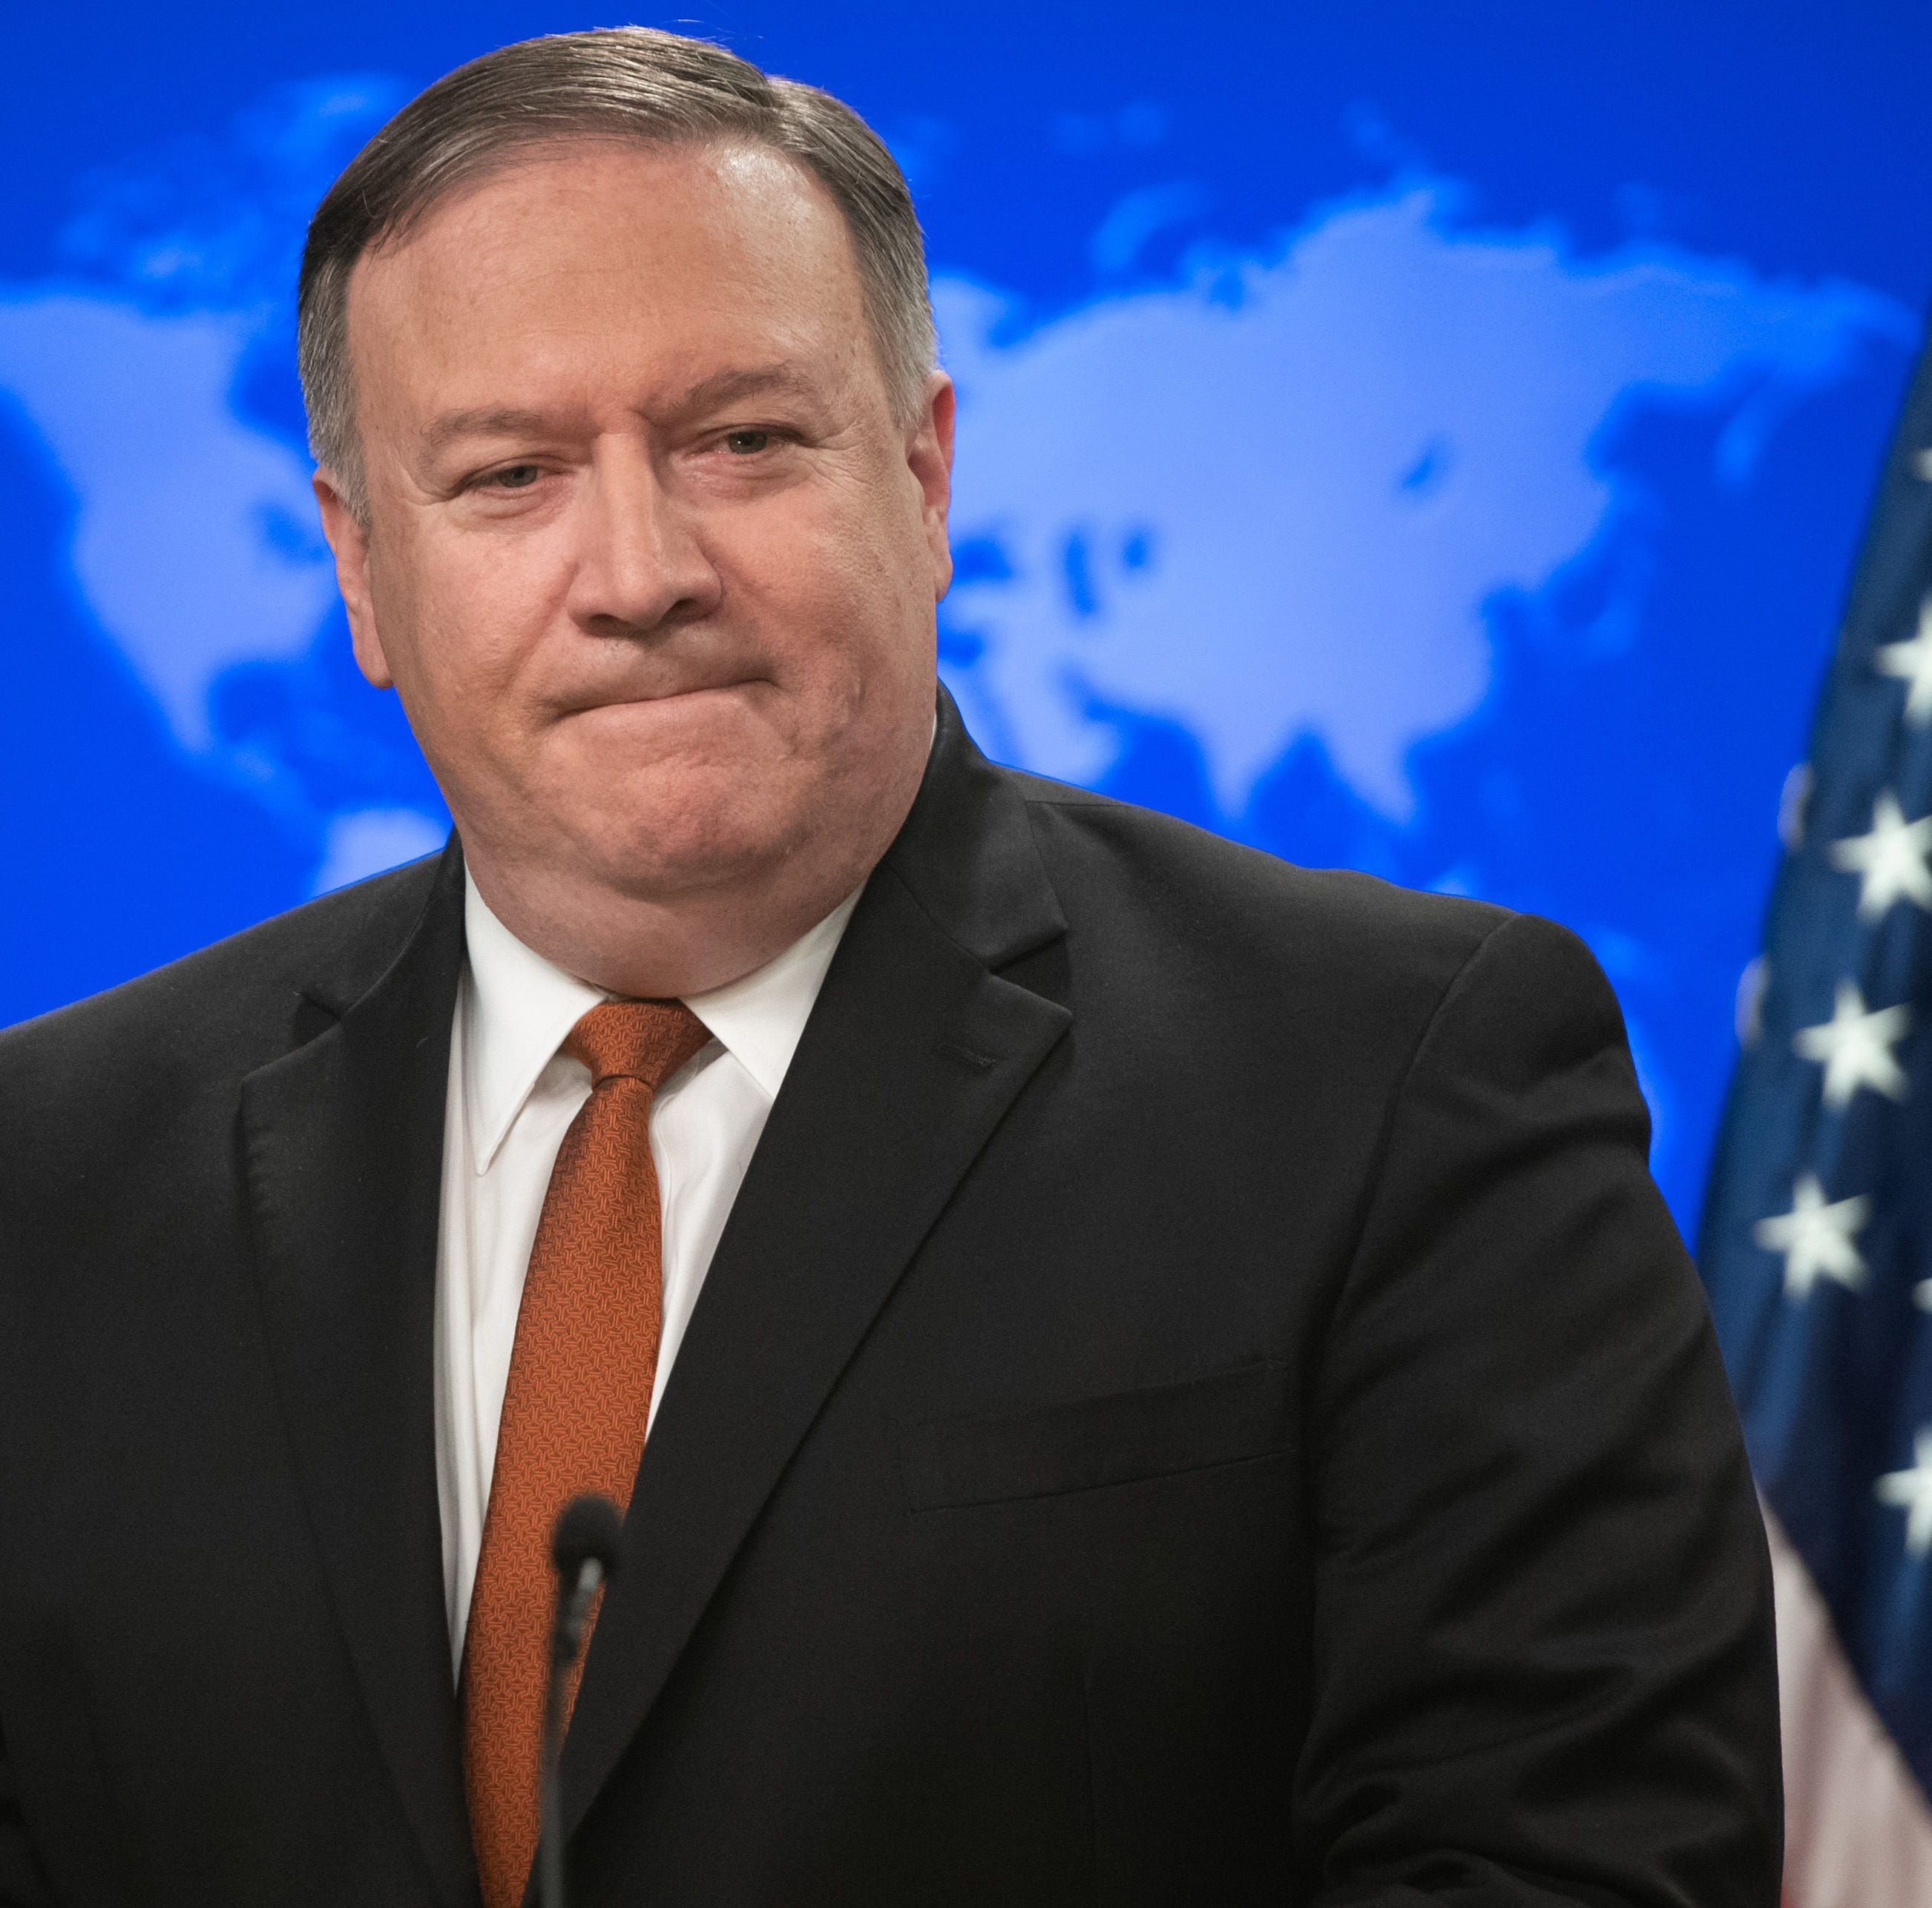 Secretary of State Mike Pompeo to travel to North Korea next month to prepare for second Trump-Kim summit